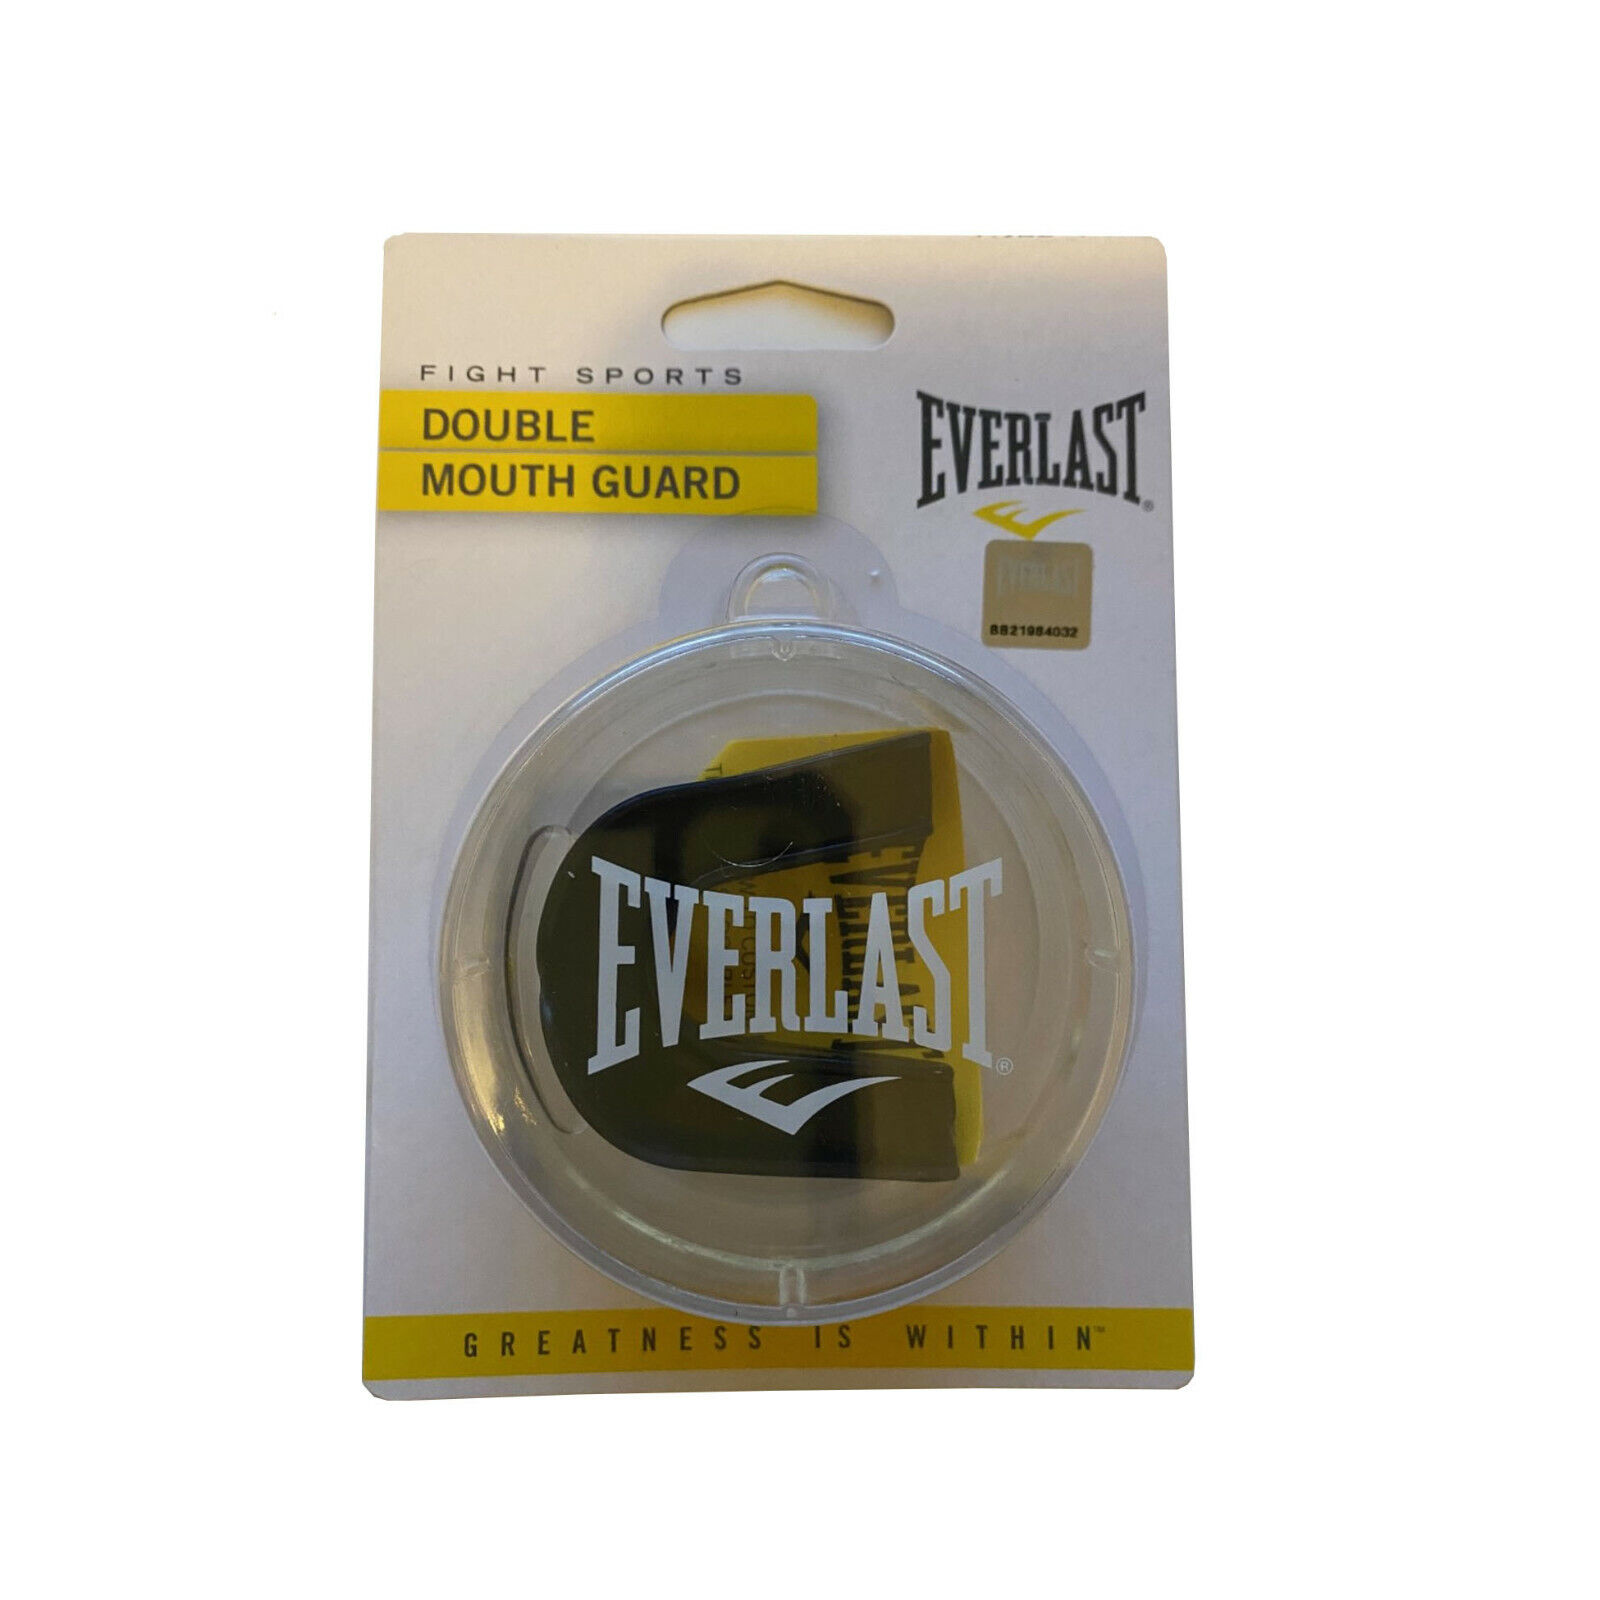 NEW Everlast Double Mouth Guard Black Model # P00002180